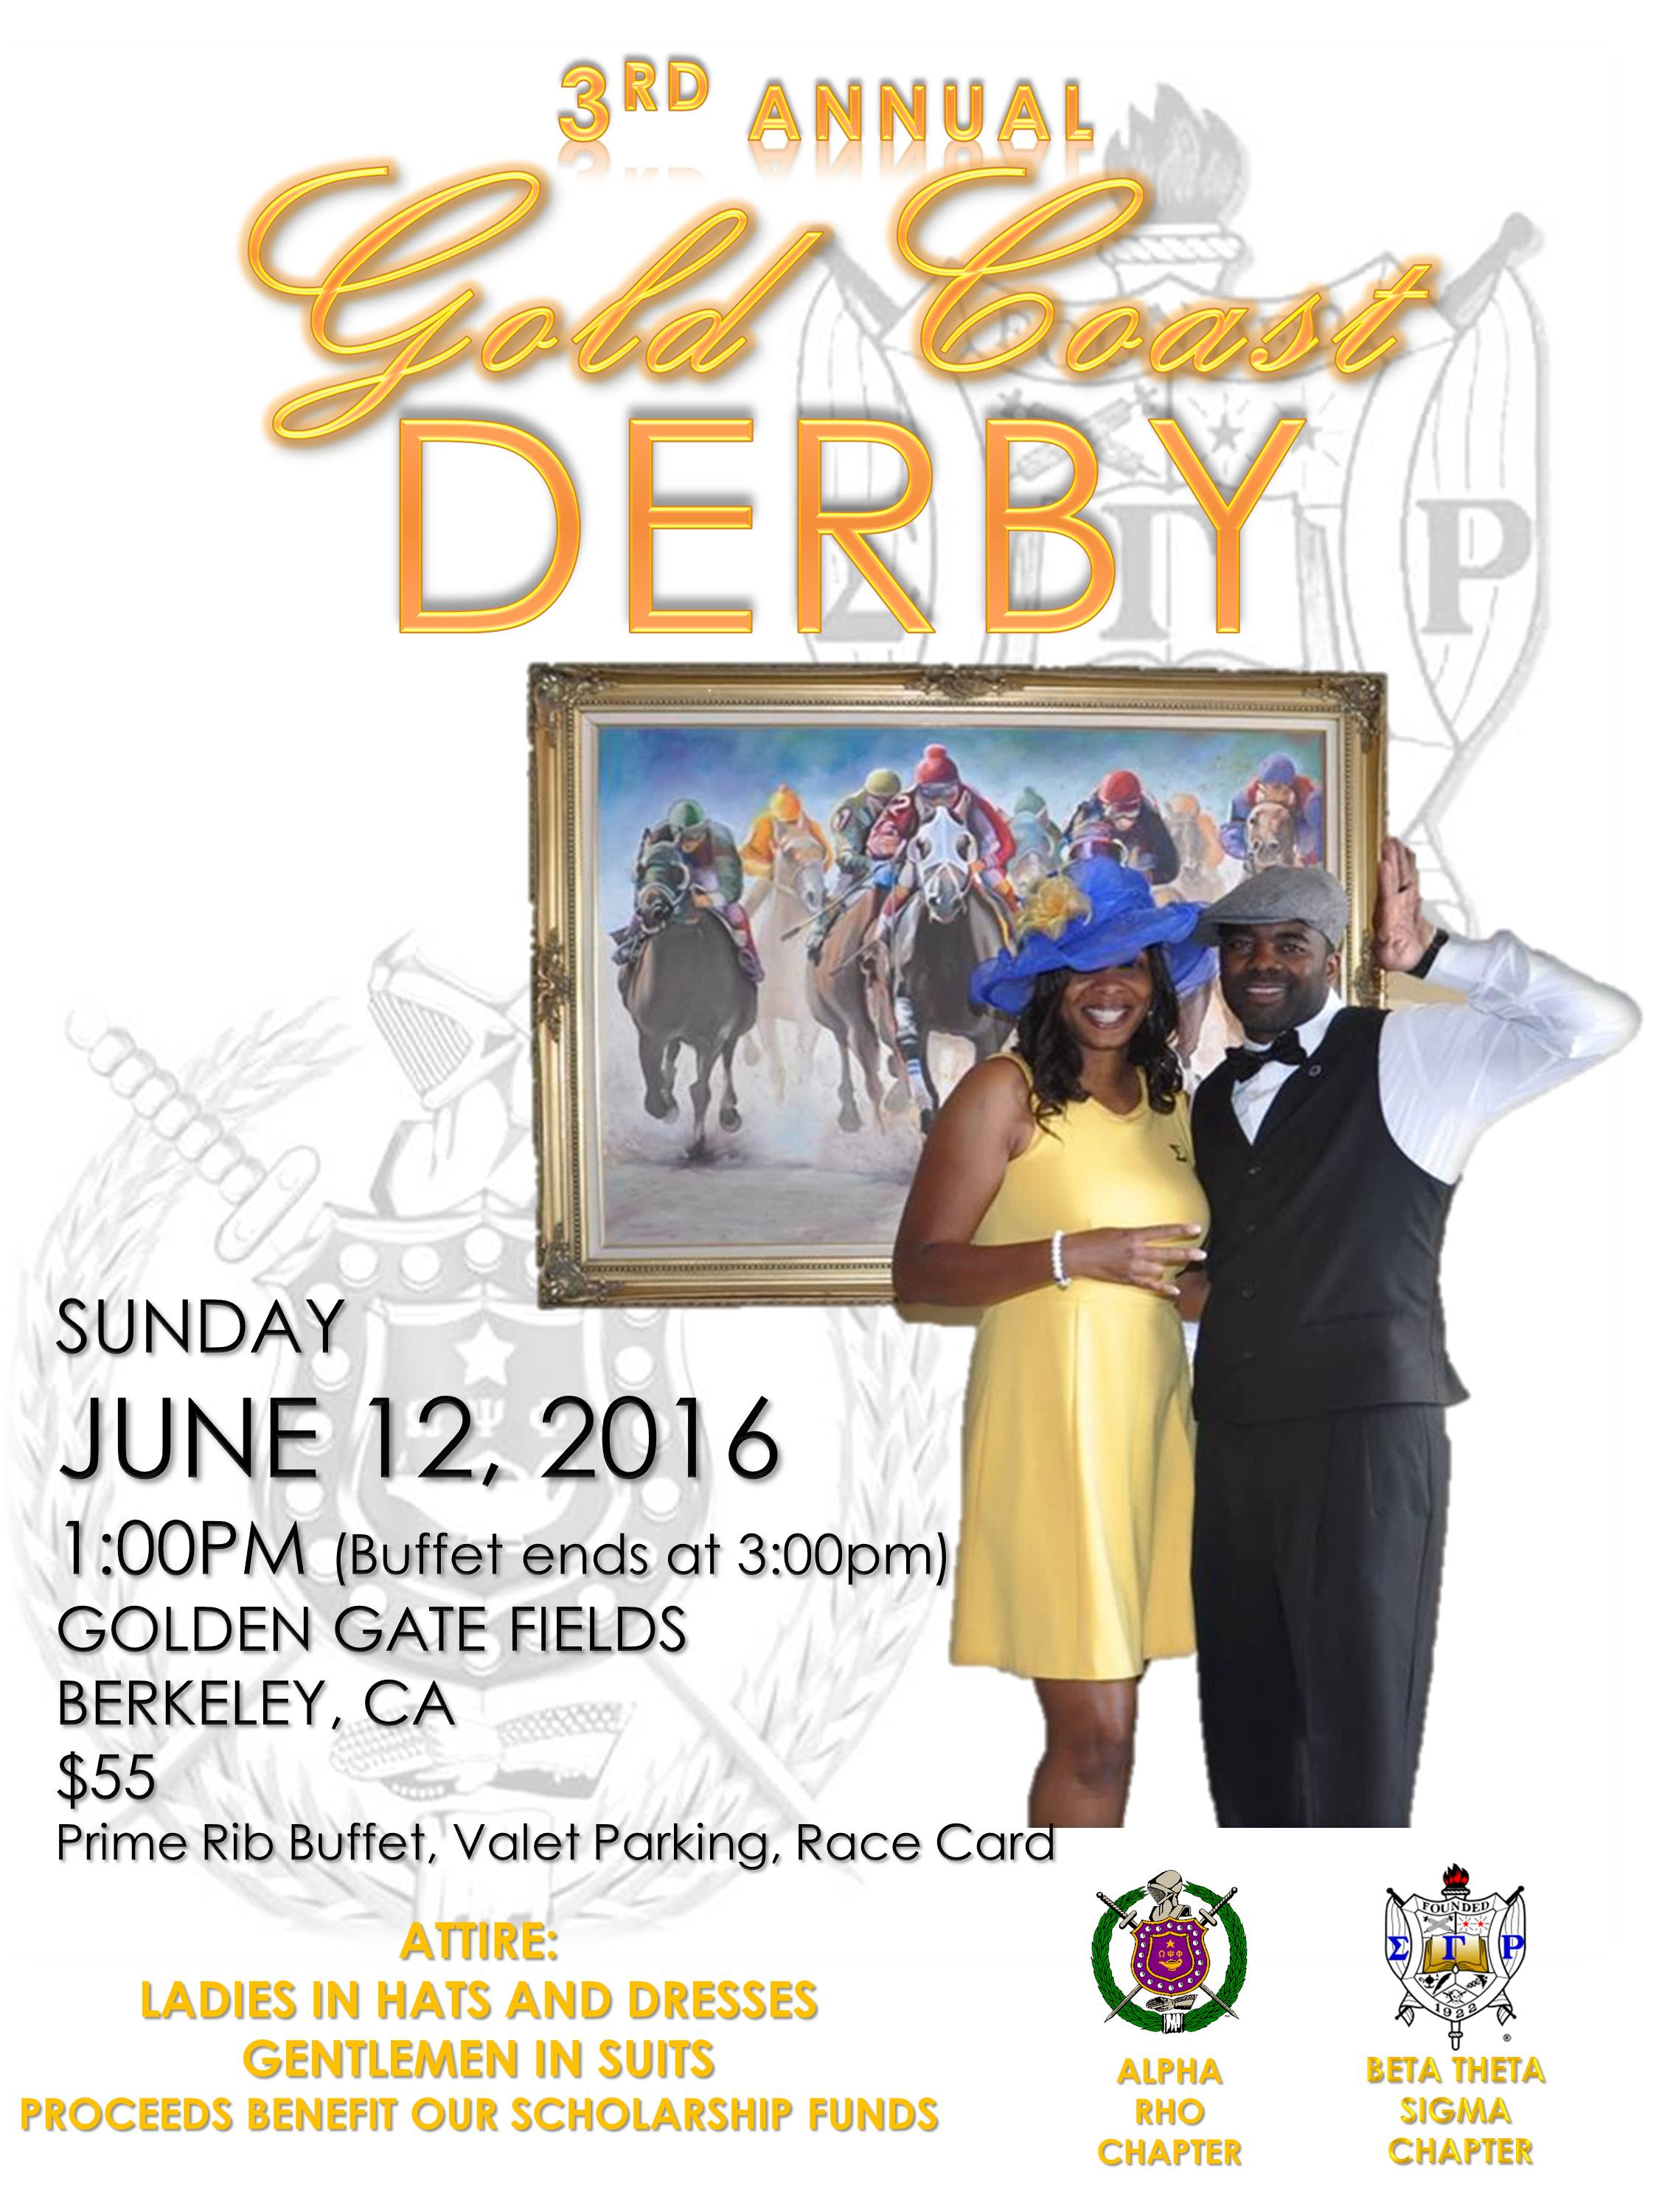 3rd annual gold coast derby day at the races sigma gamma rho and omega psi phi tickets sun